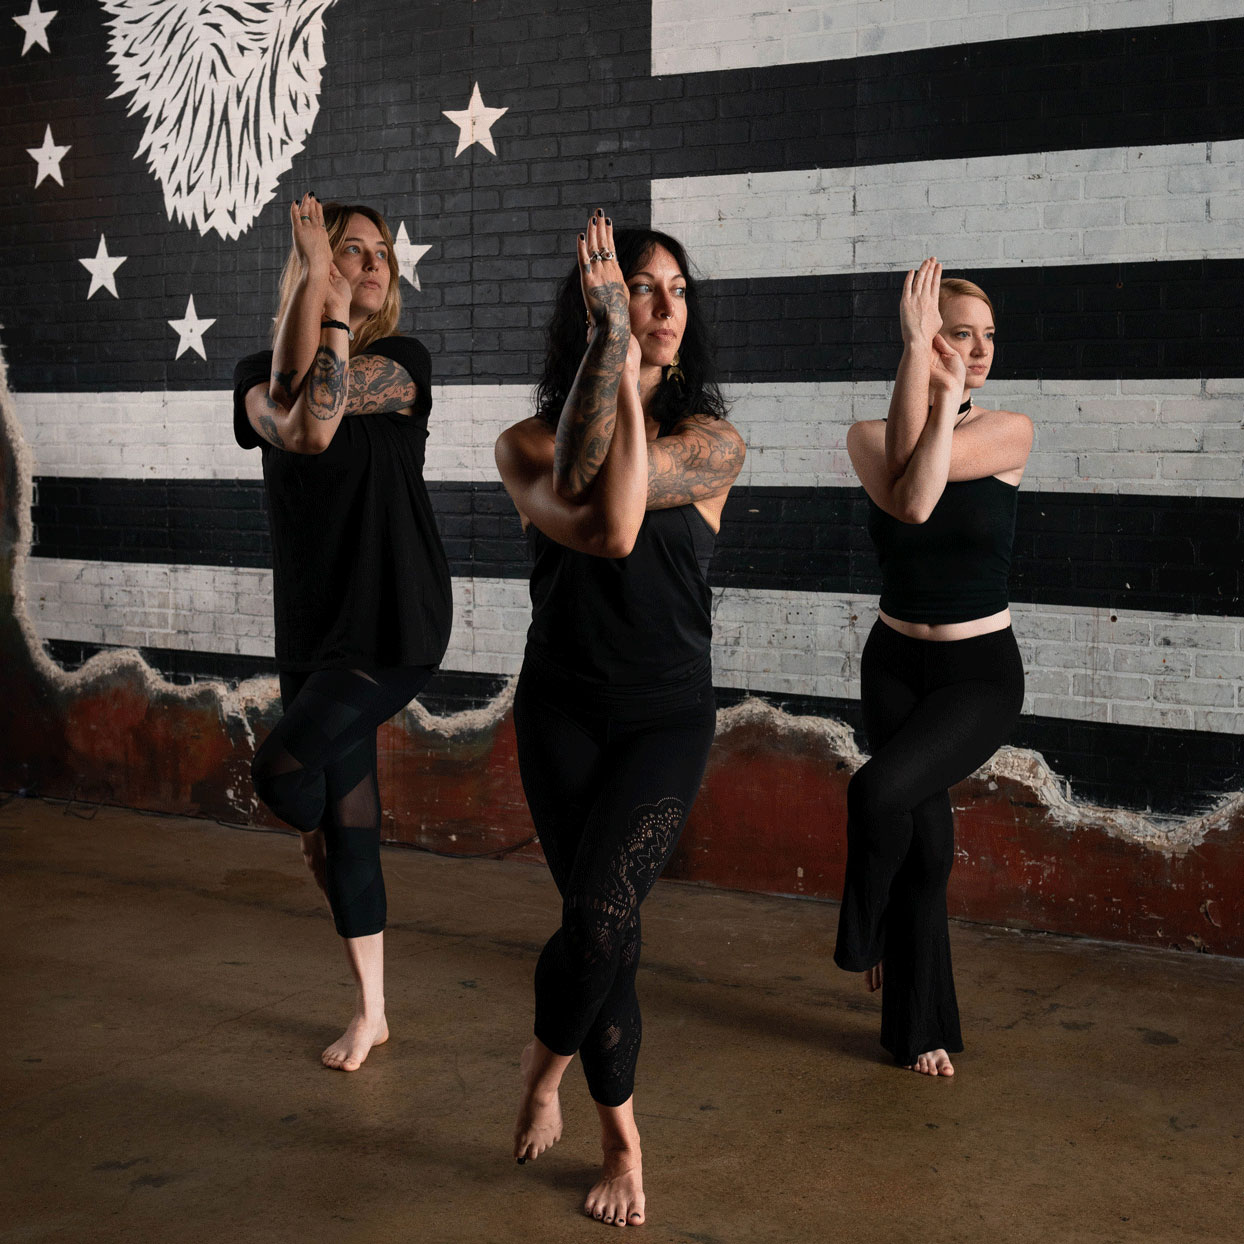 three women in eagle pose - yoga wearing black yoga clothes